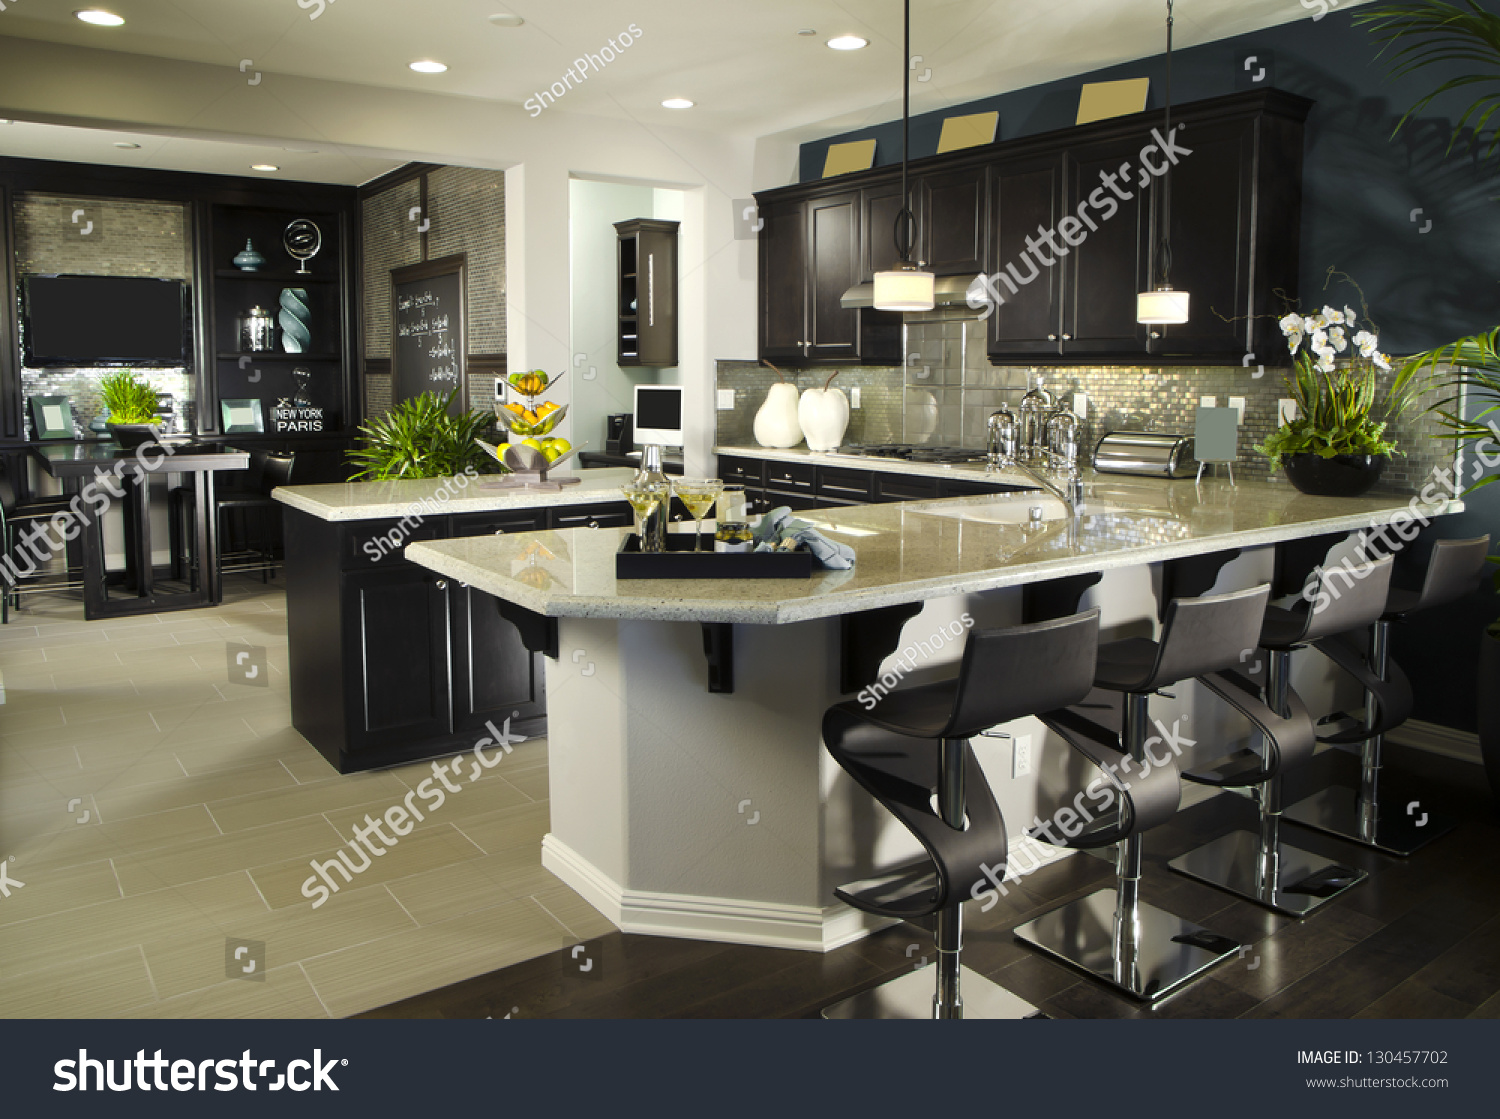 Kitchen interior home architecture stock images stock for Kitchen room model